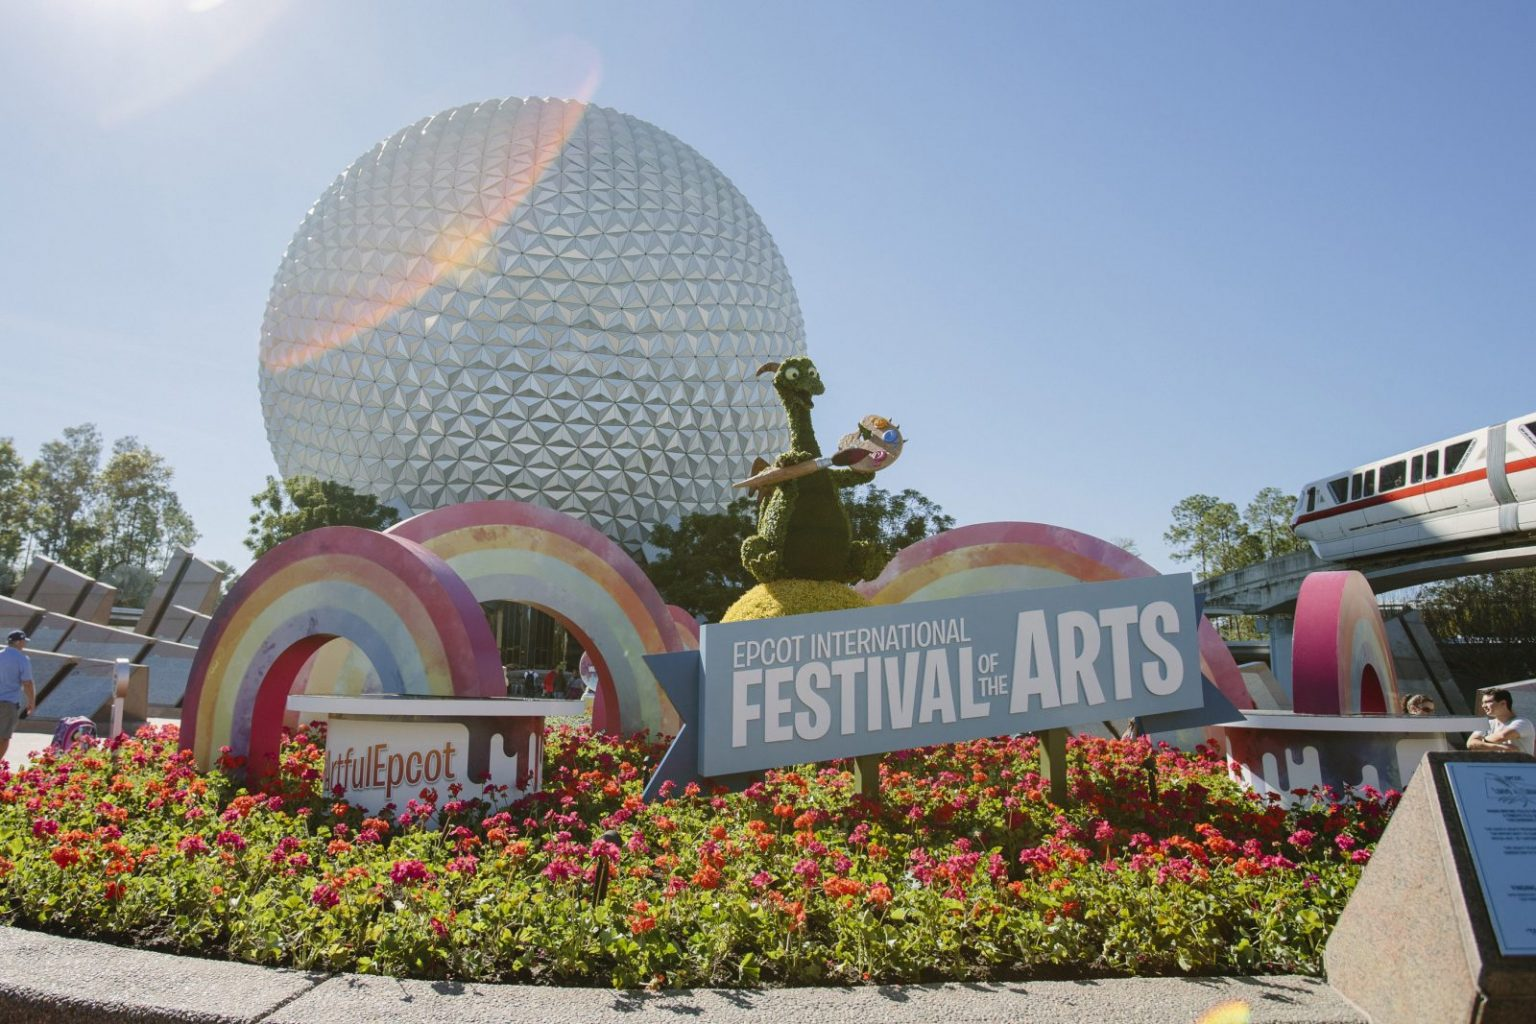 Entrance to the Epcot Festival Of The Arts